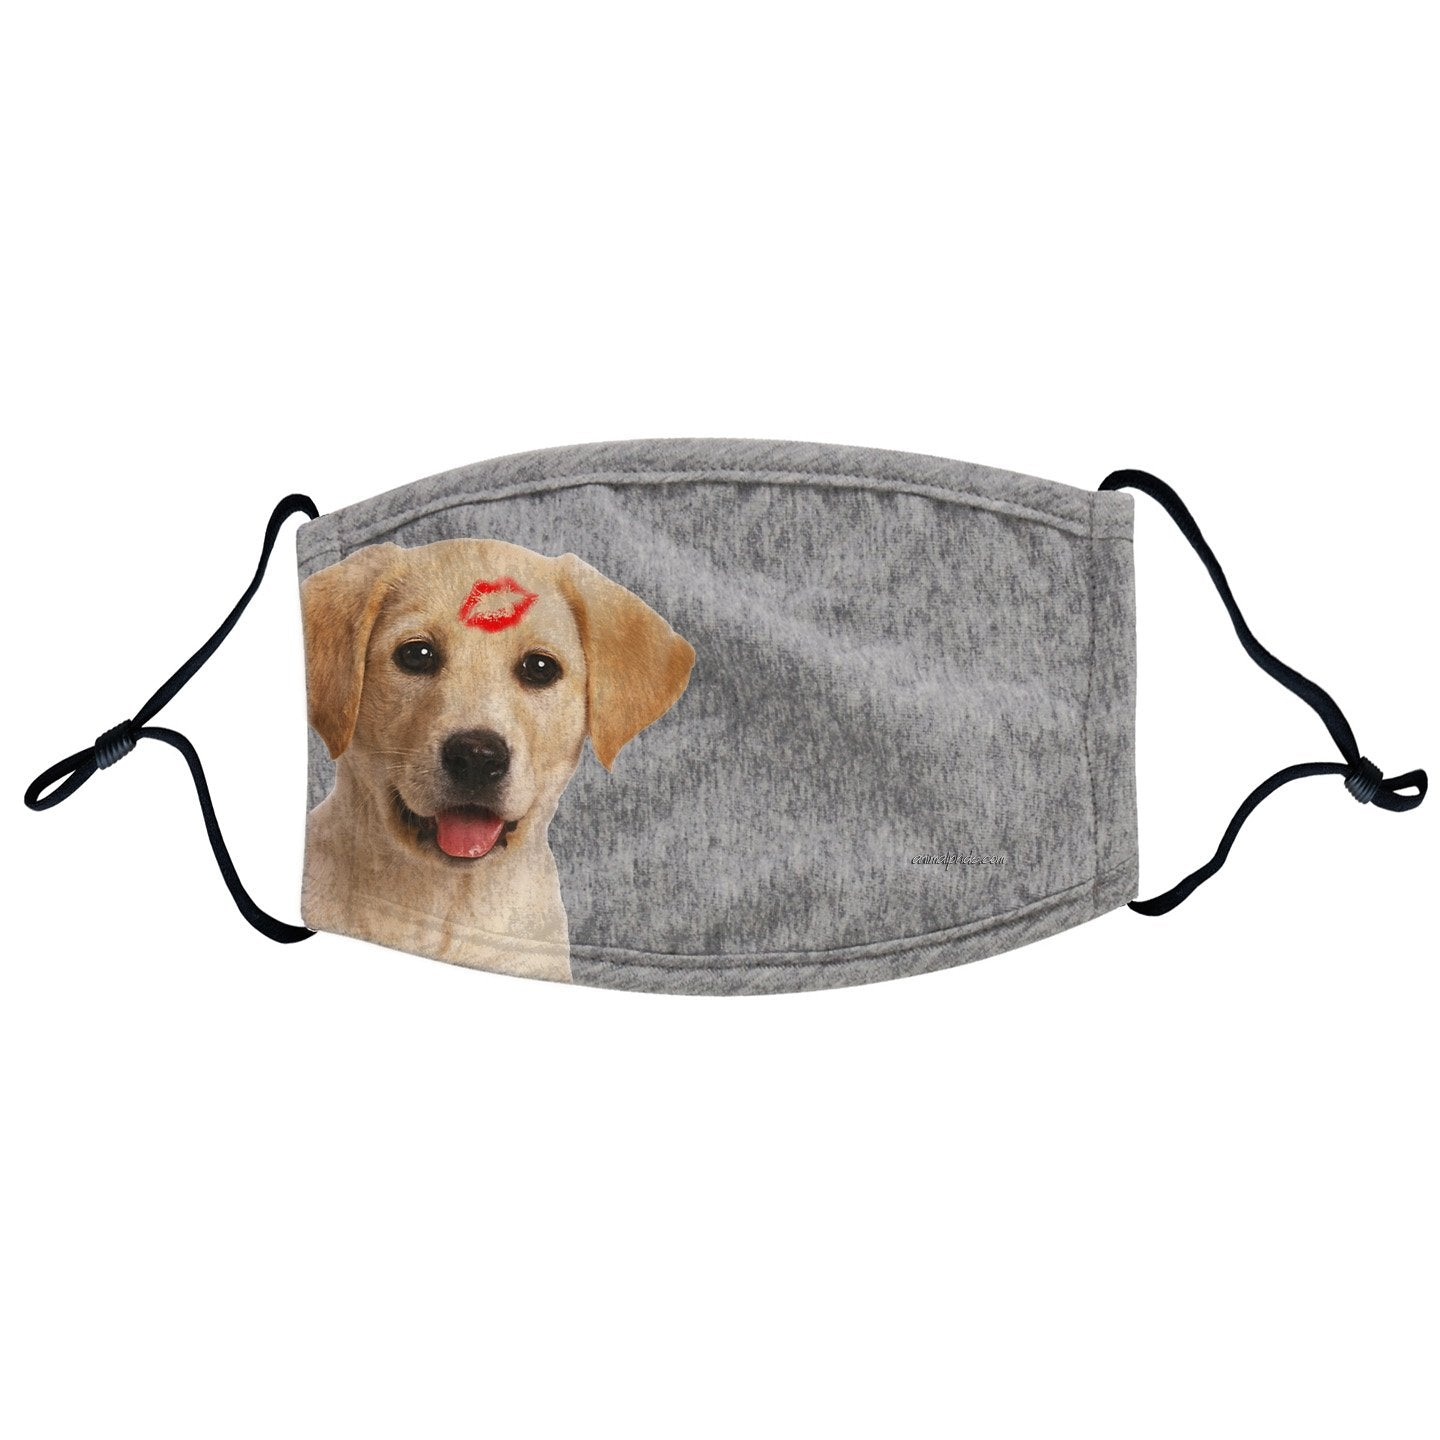 Yellow Lab Kiss Face Mask - Adjustable Ear Loops, Reusable & Washable, Cloth - Labradors.com